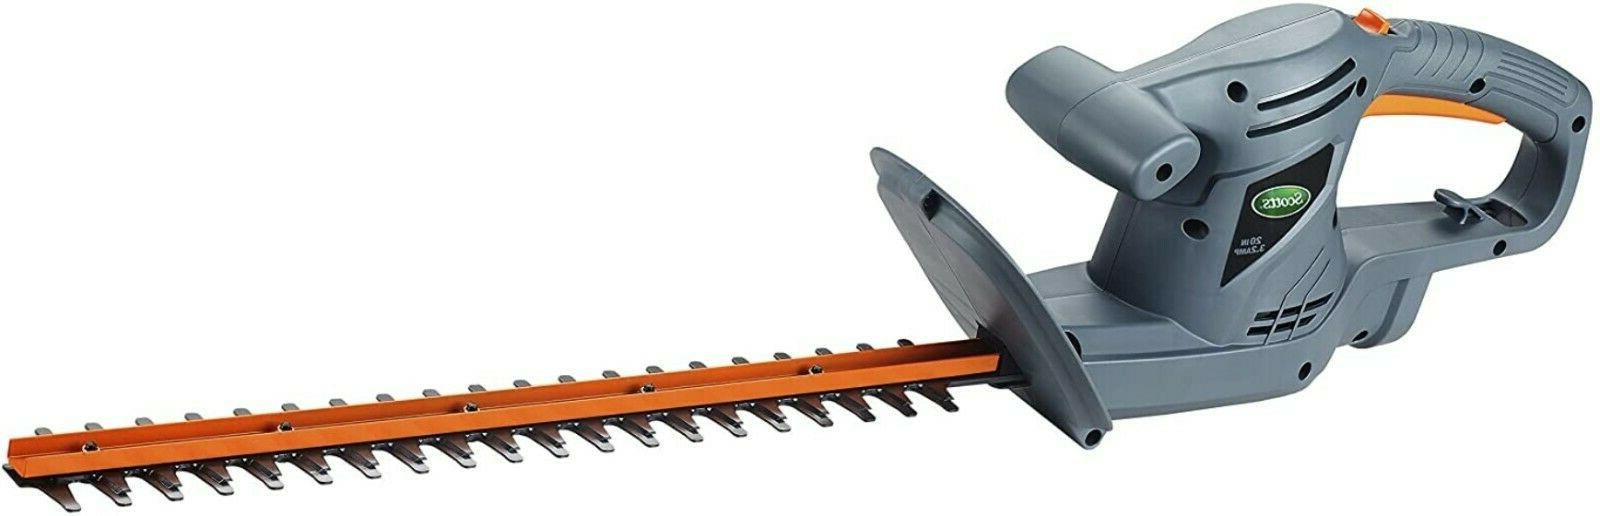 scotts electric hedge trimmer outdoor power tools